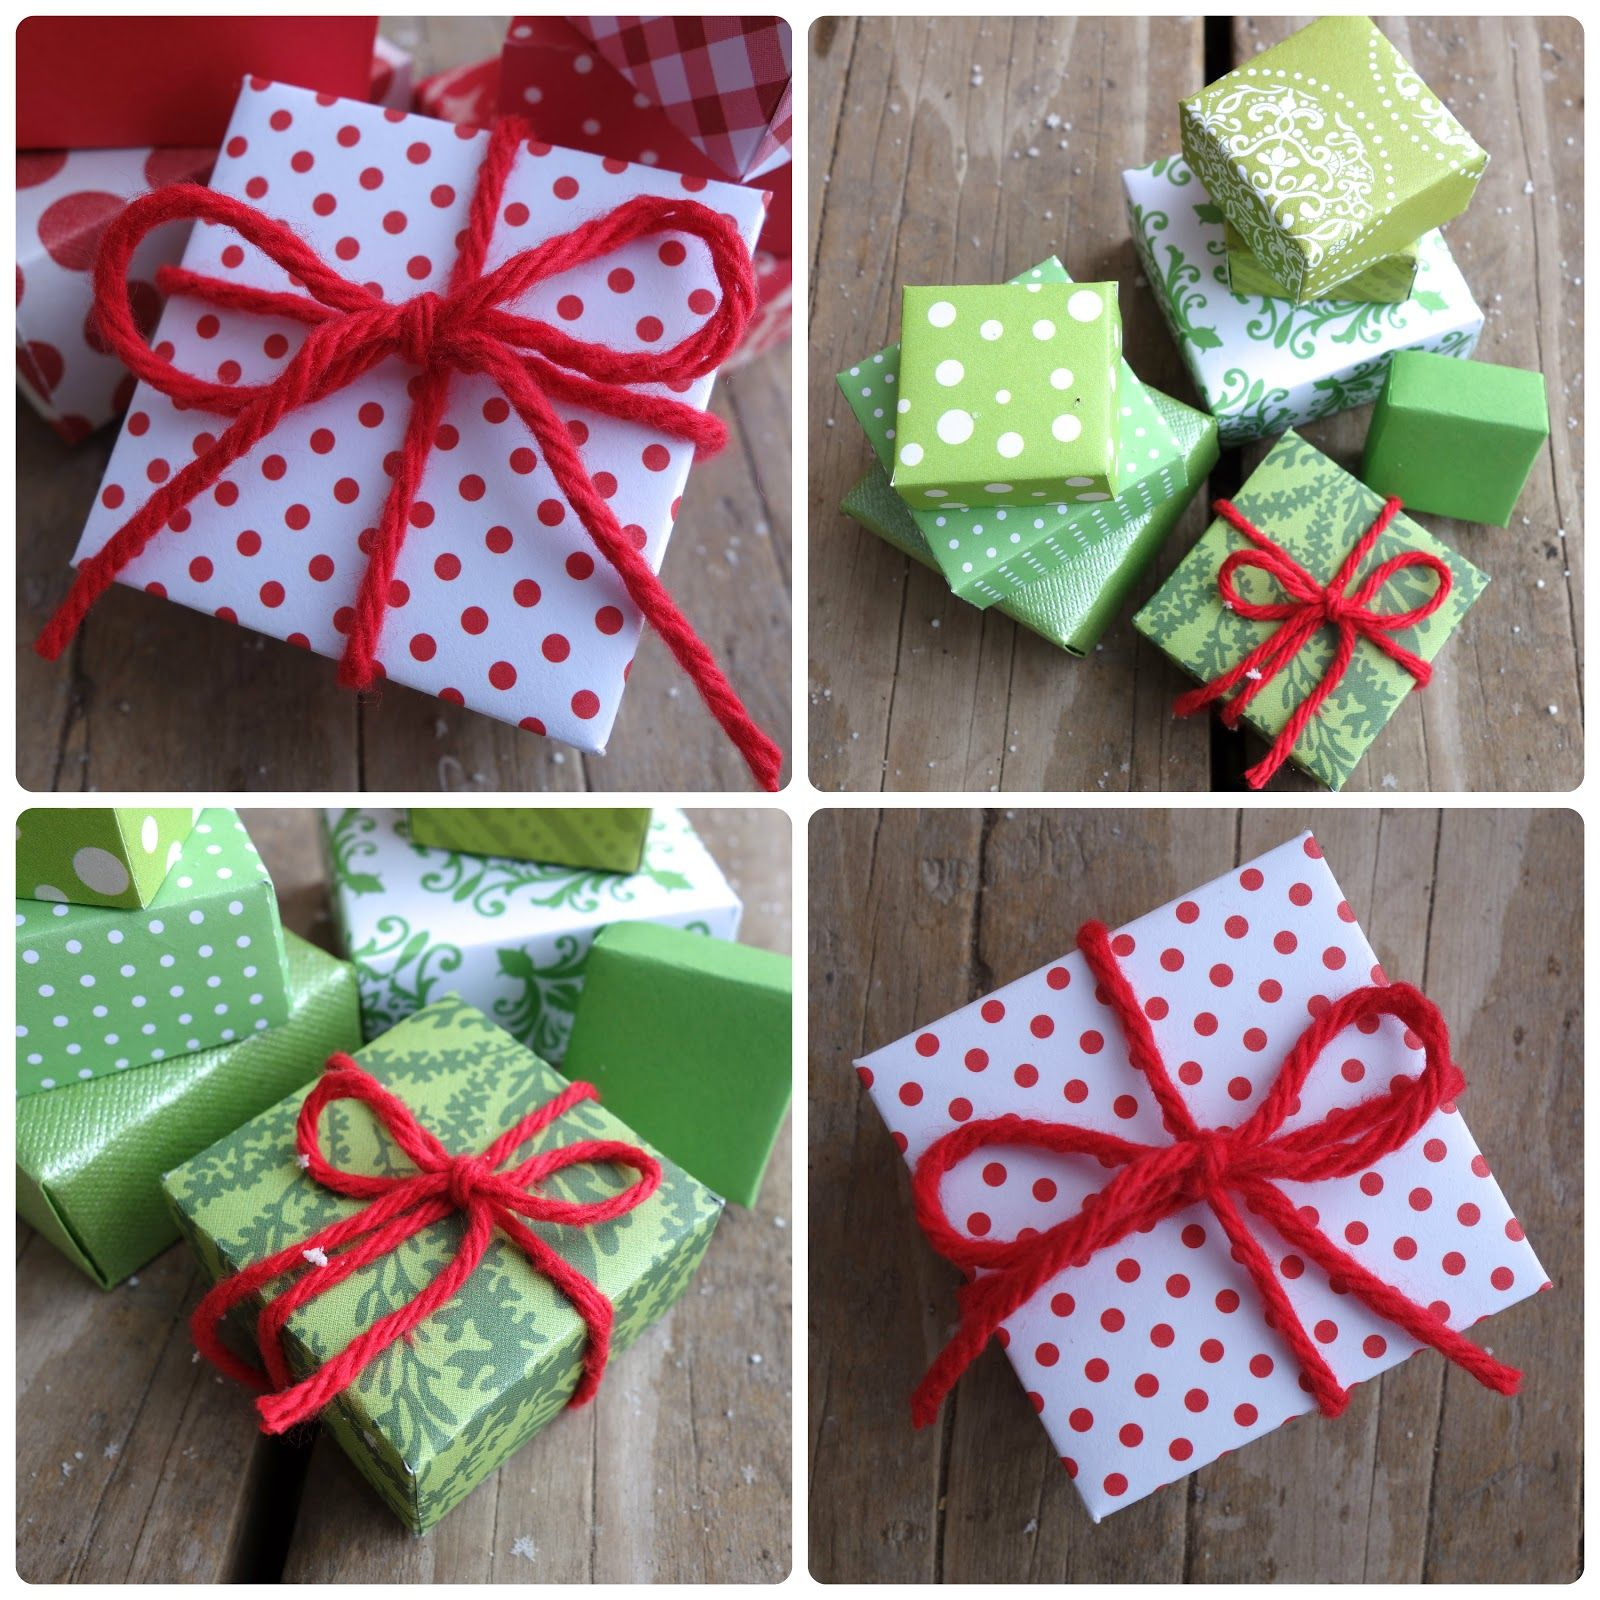 DIY Gift Boxes Diy gift box, Diy birthday gifts for